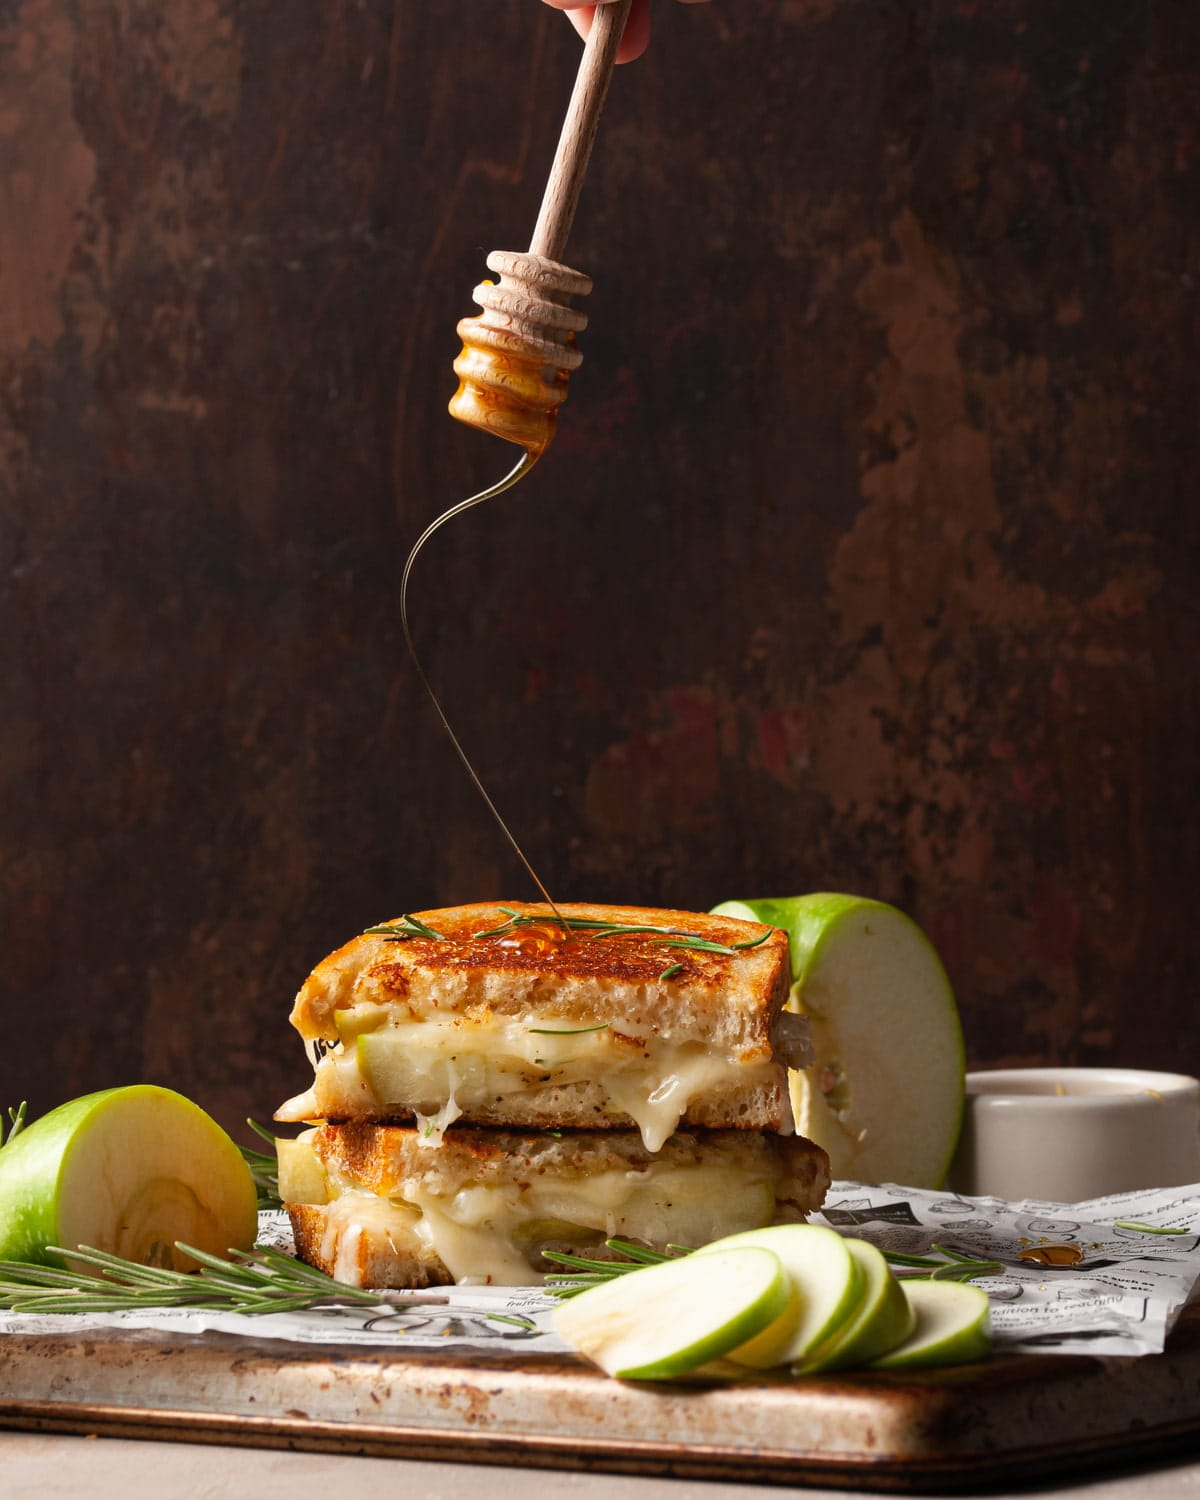 dripping honey over top a grilled cheese sandwich